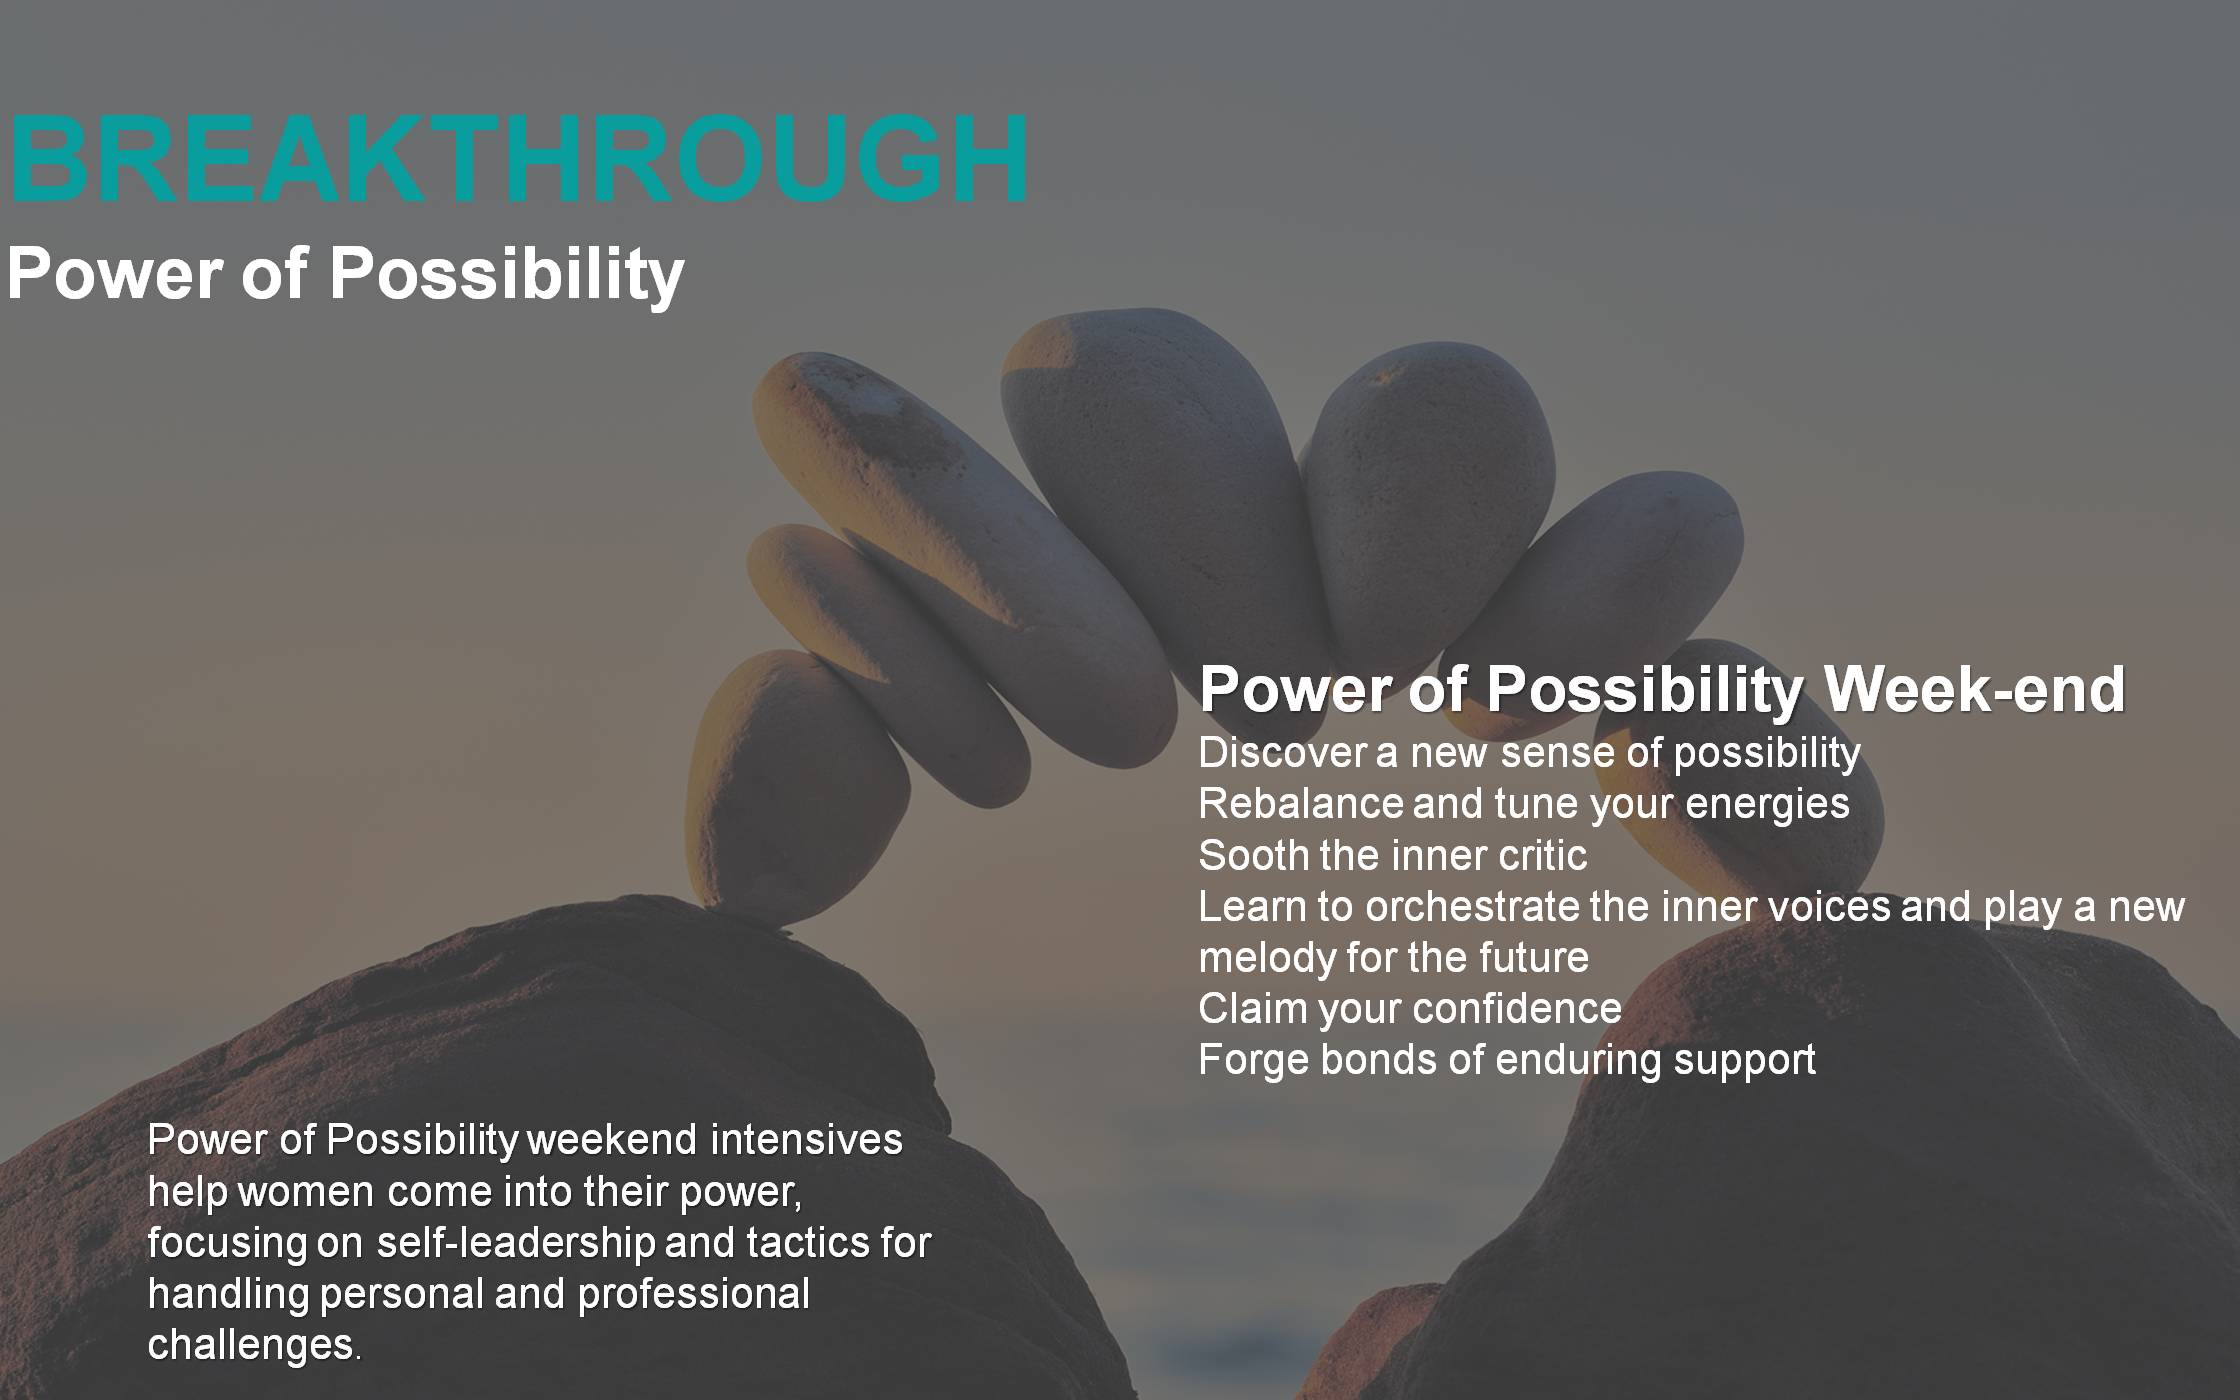 Breakthrough power of possiblity